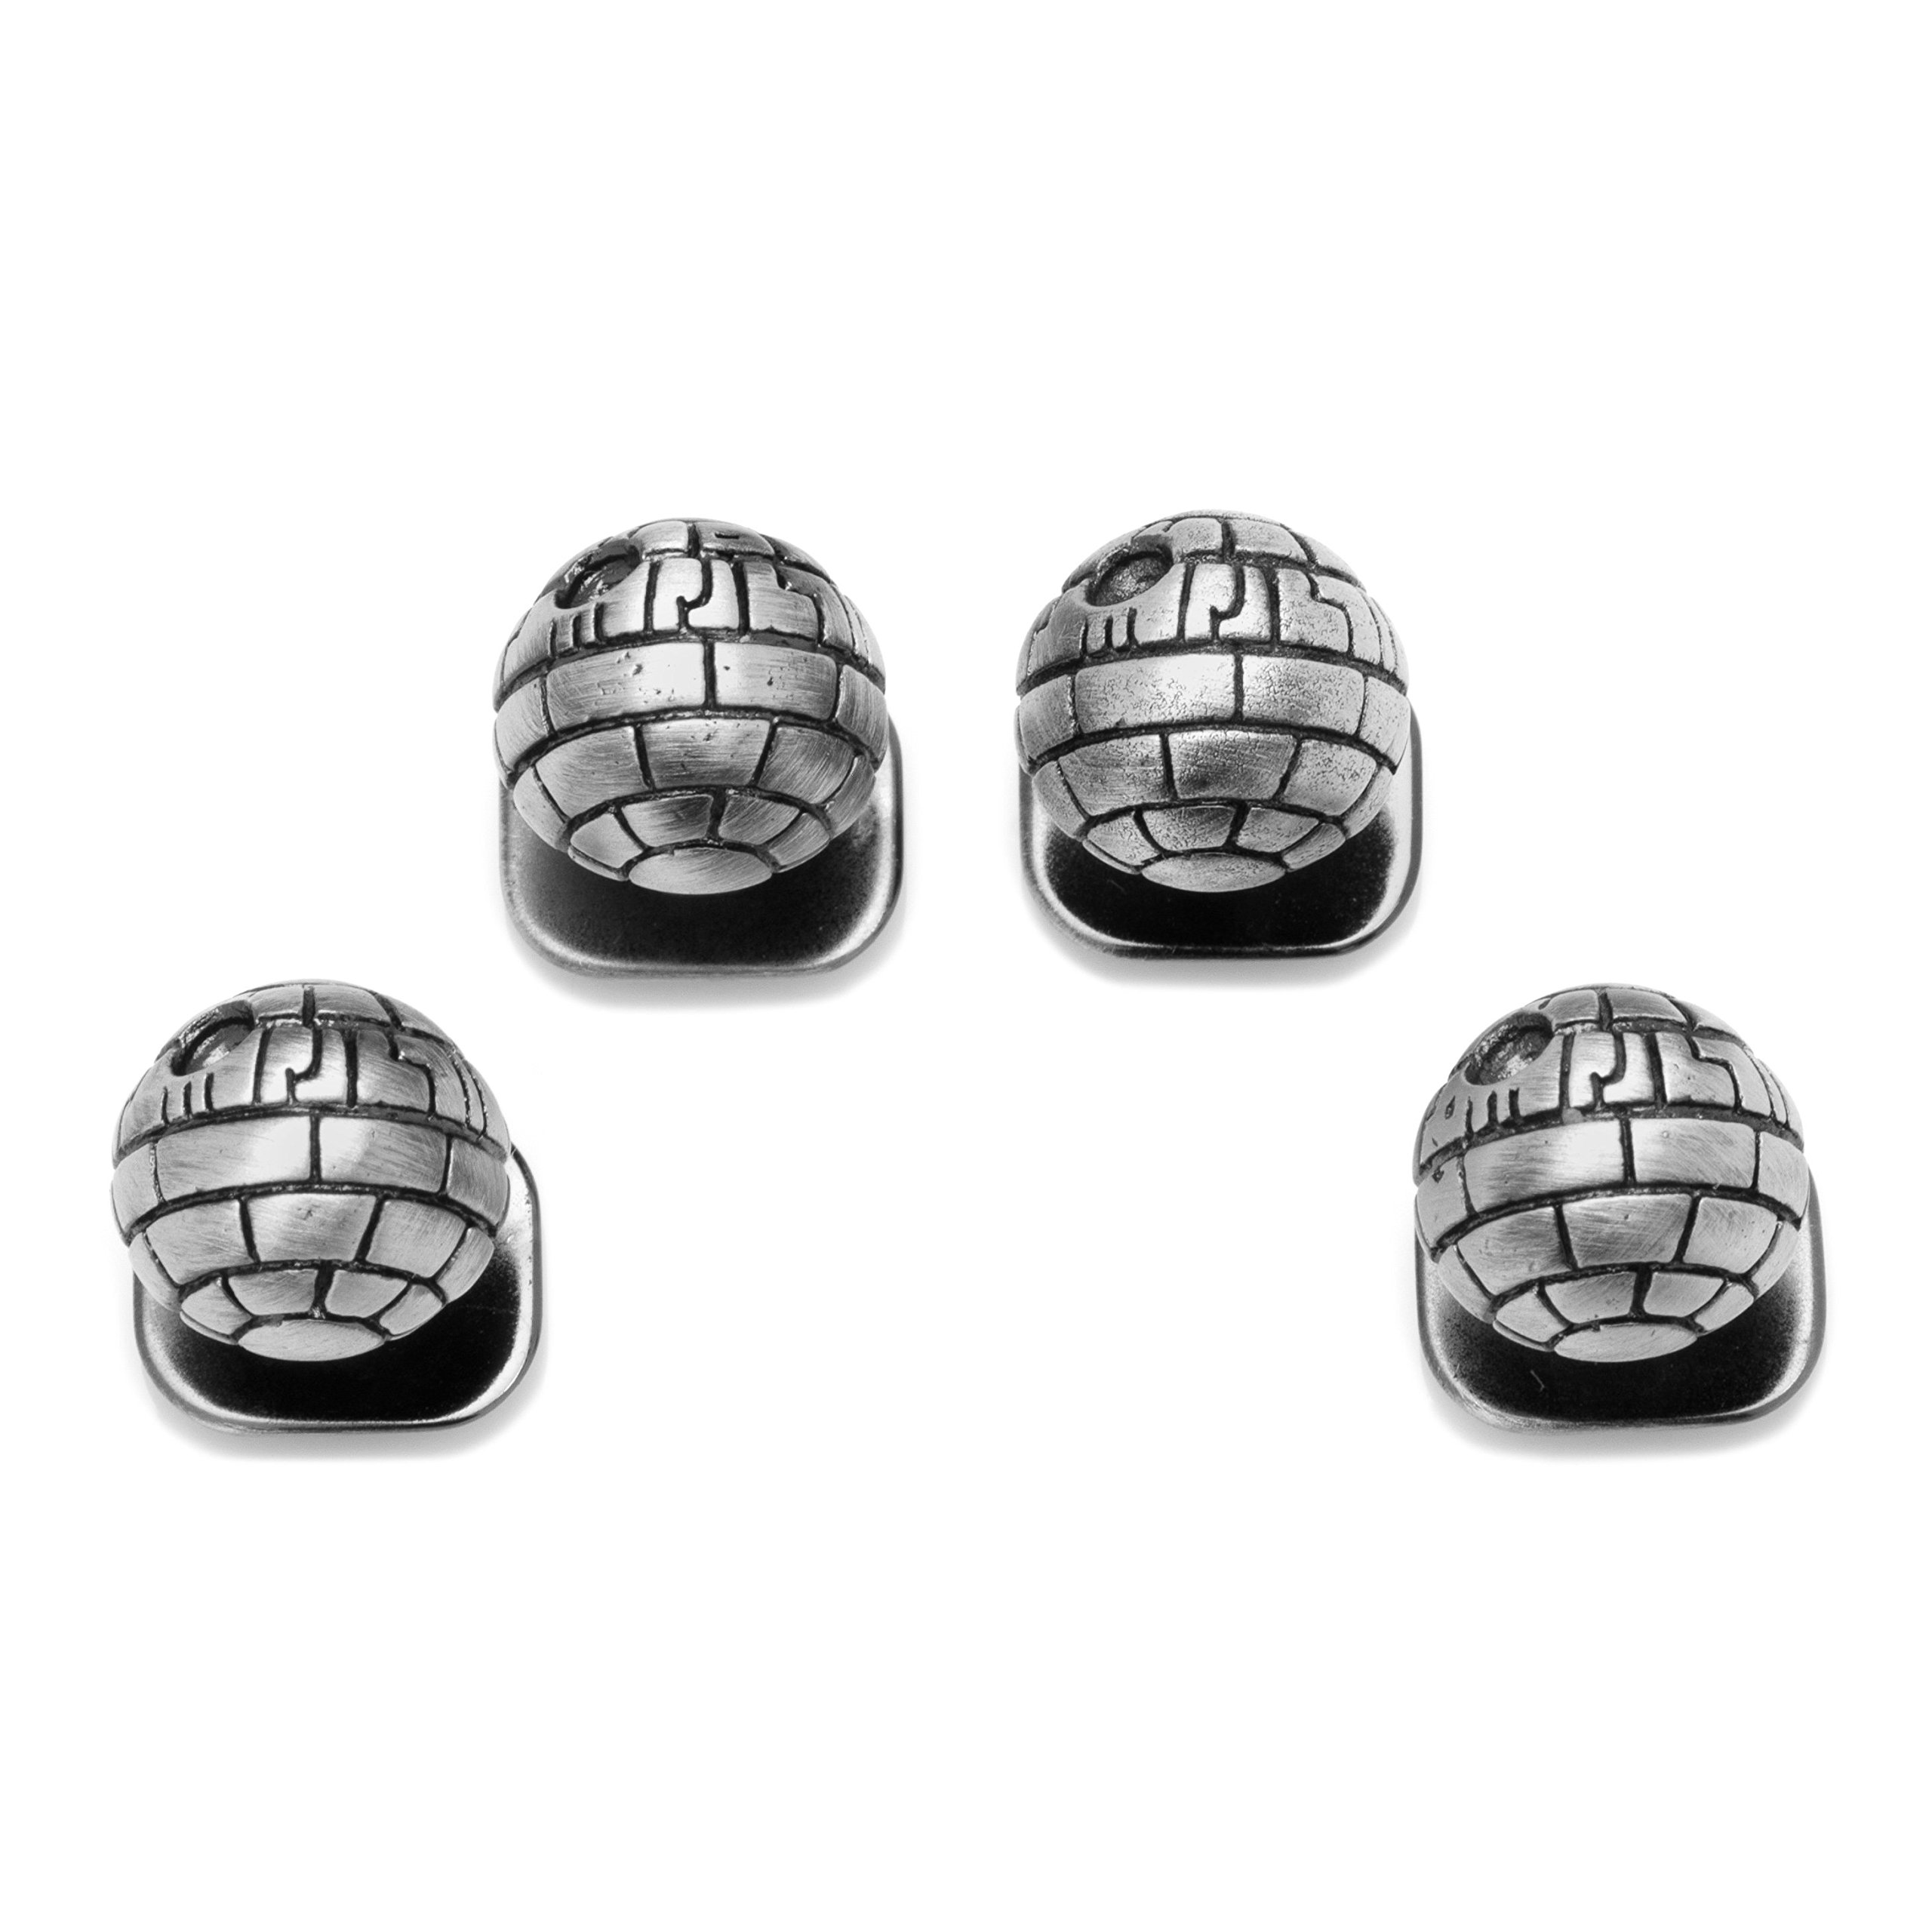 Star Wars 3D Death Star I Studs, Officially Licensed